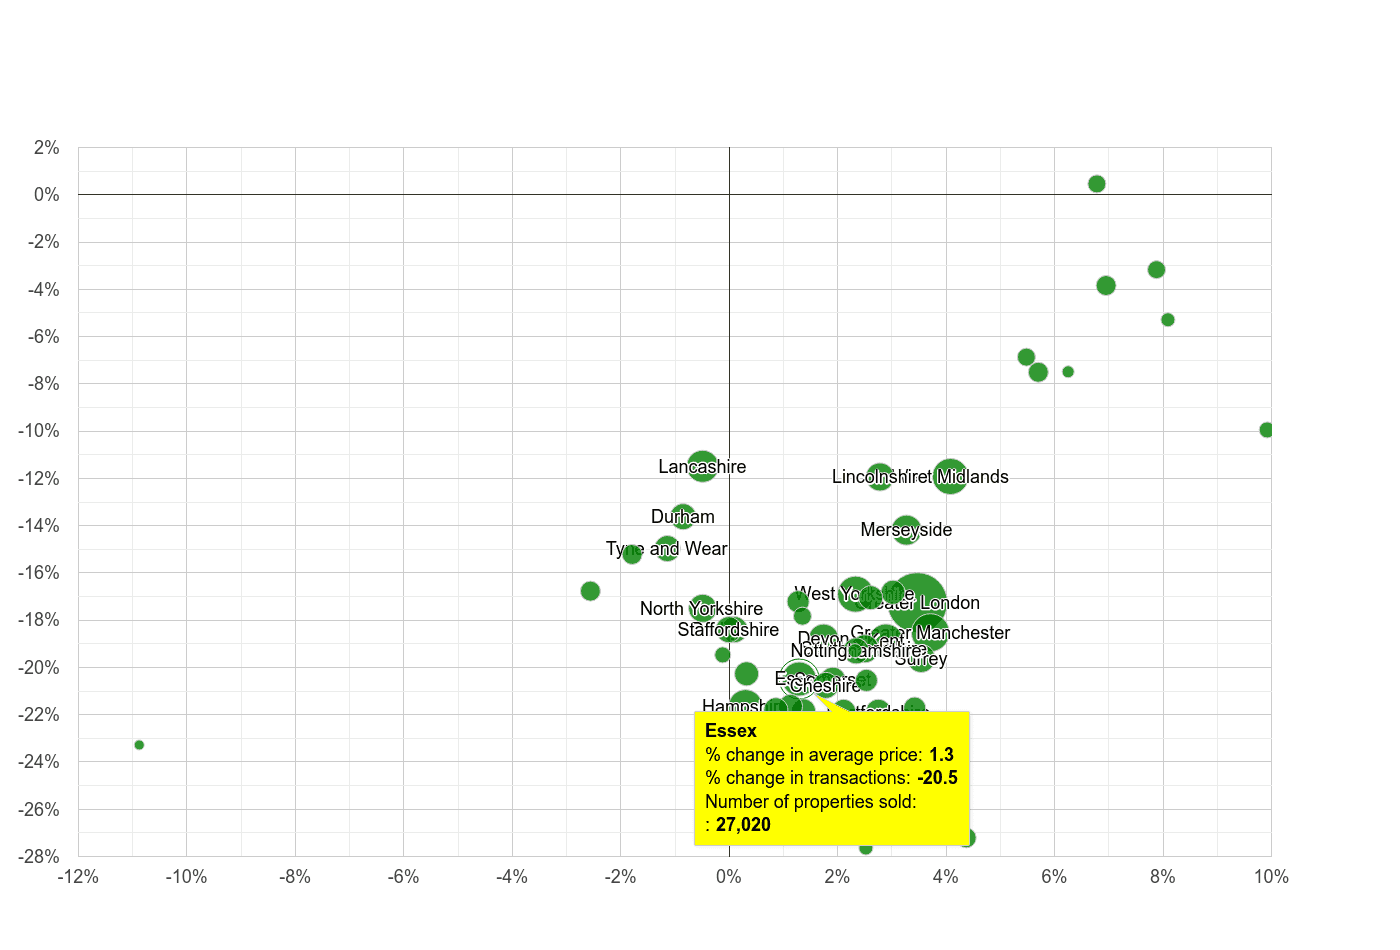 Essex property price and sales volume change relative to other counties